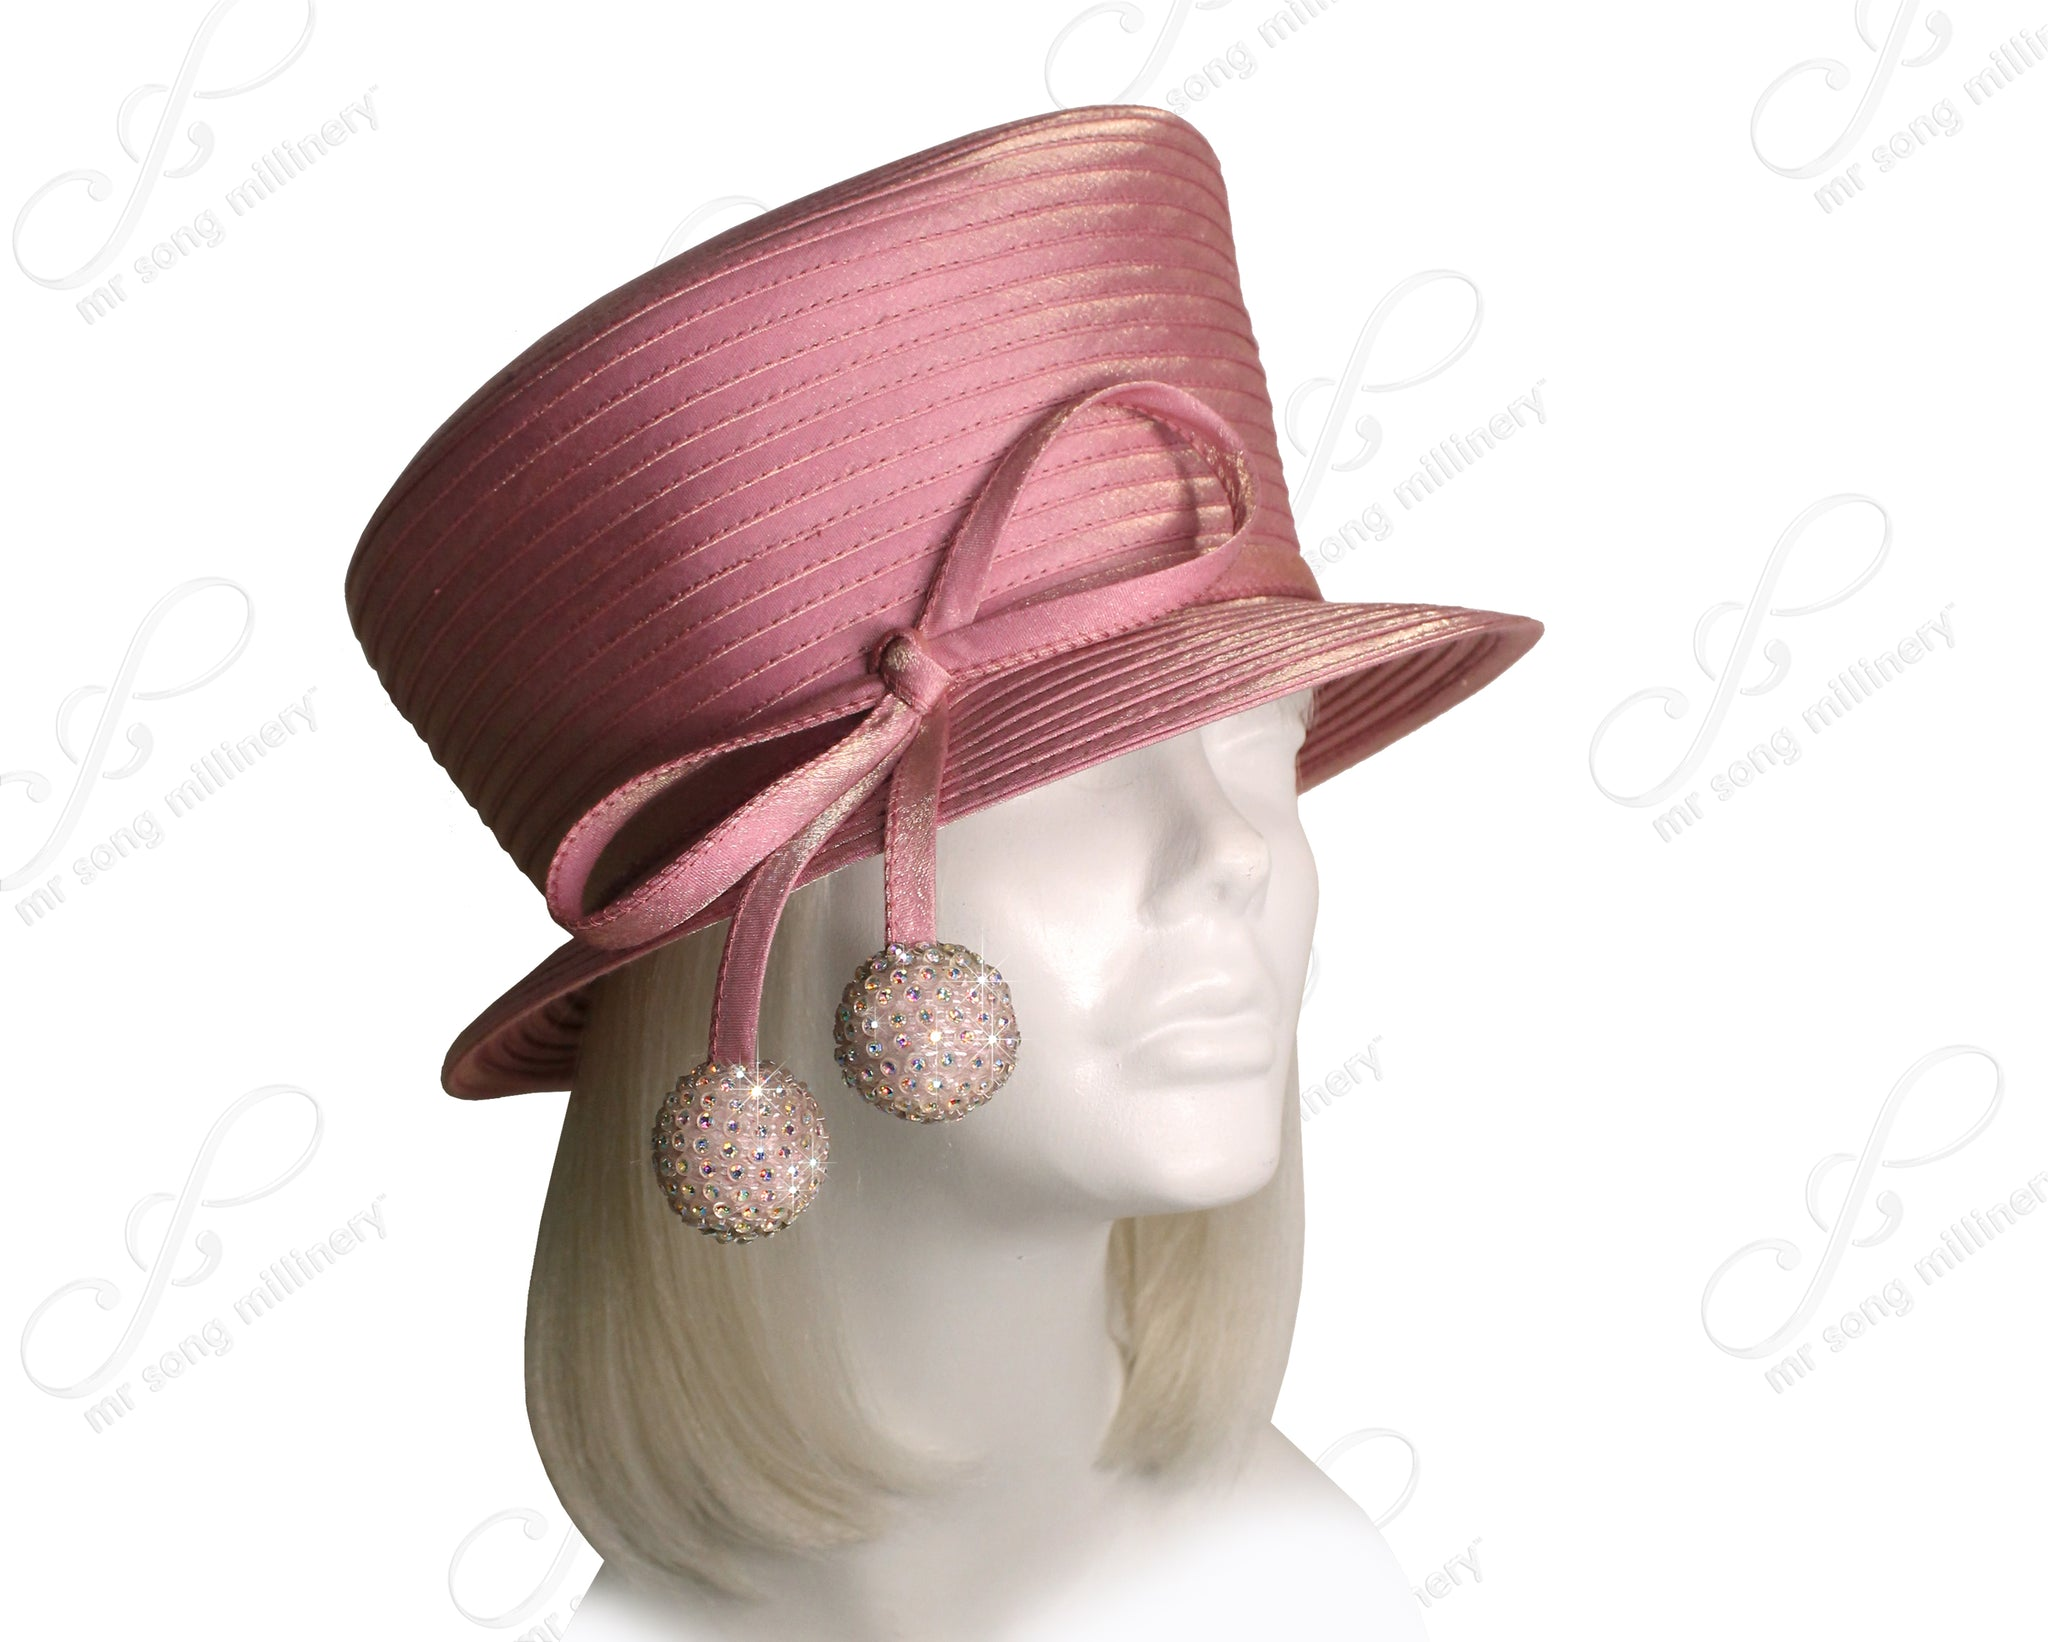 Mr. Song Millinery All-Season Small Width Brim Hat With Slant Top Crown - 3 COLORS